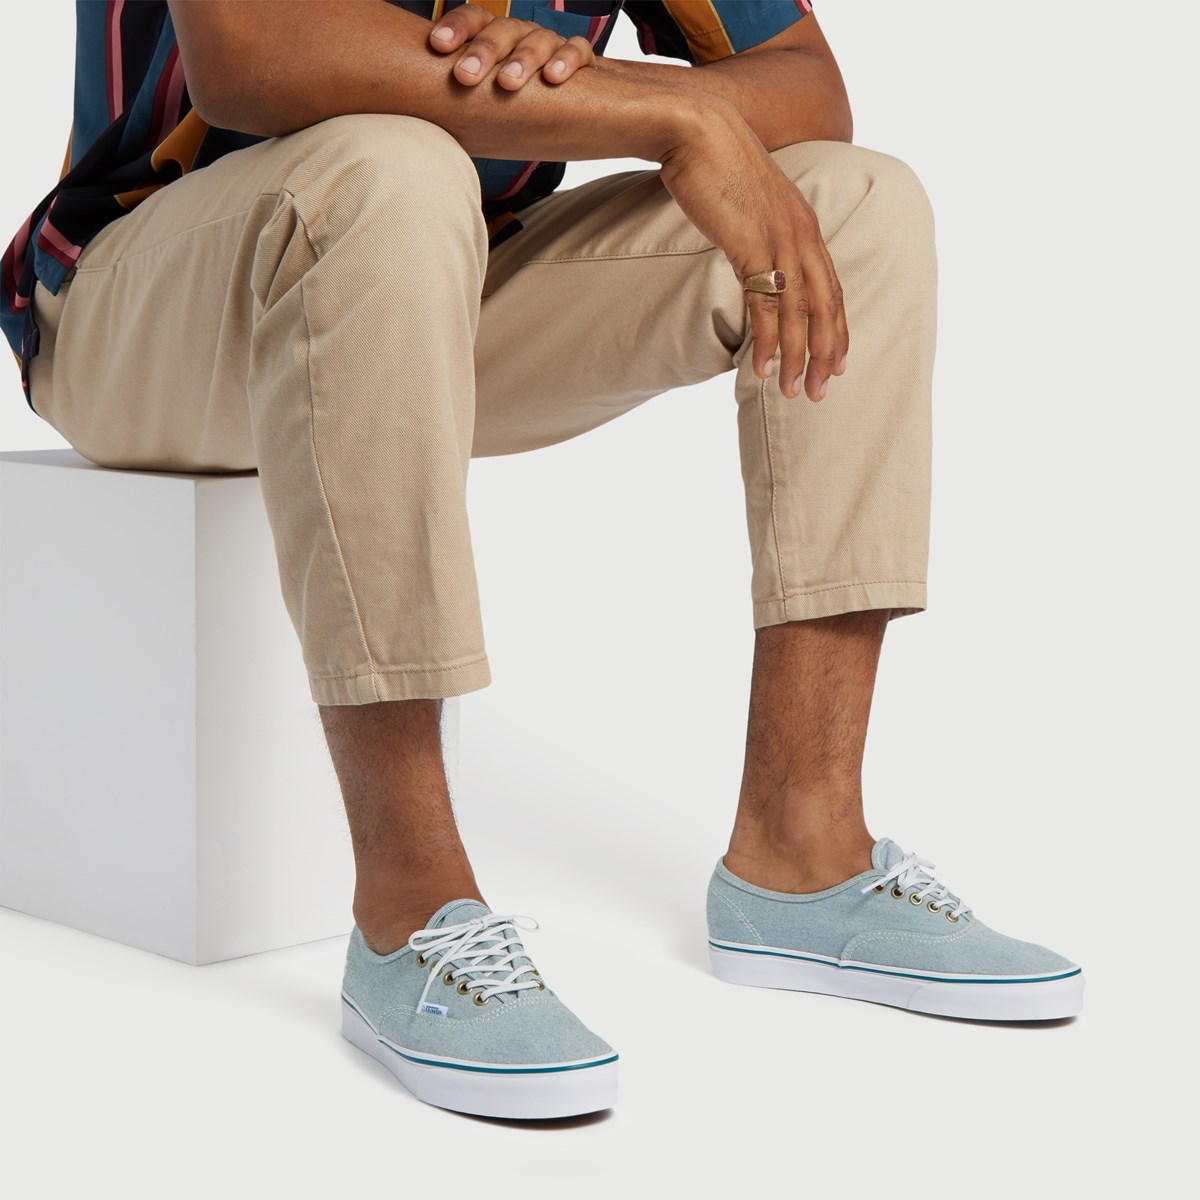 Men's Authentic P.E.T Sneaker in Blue